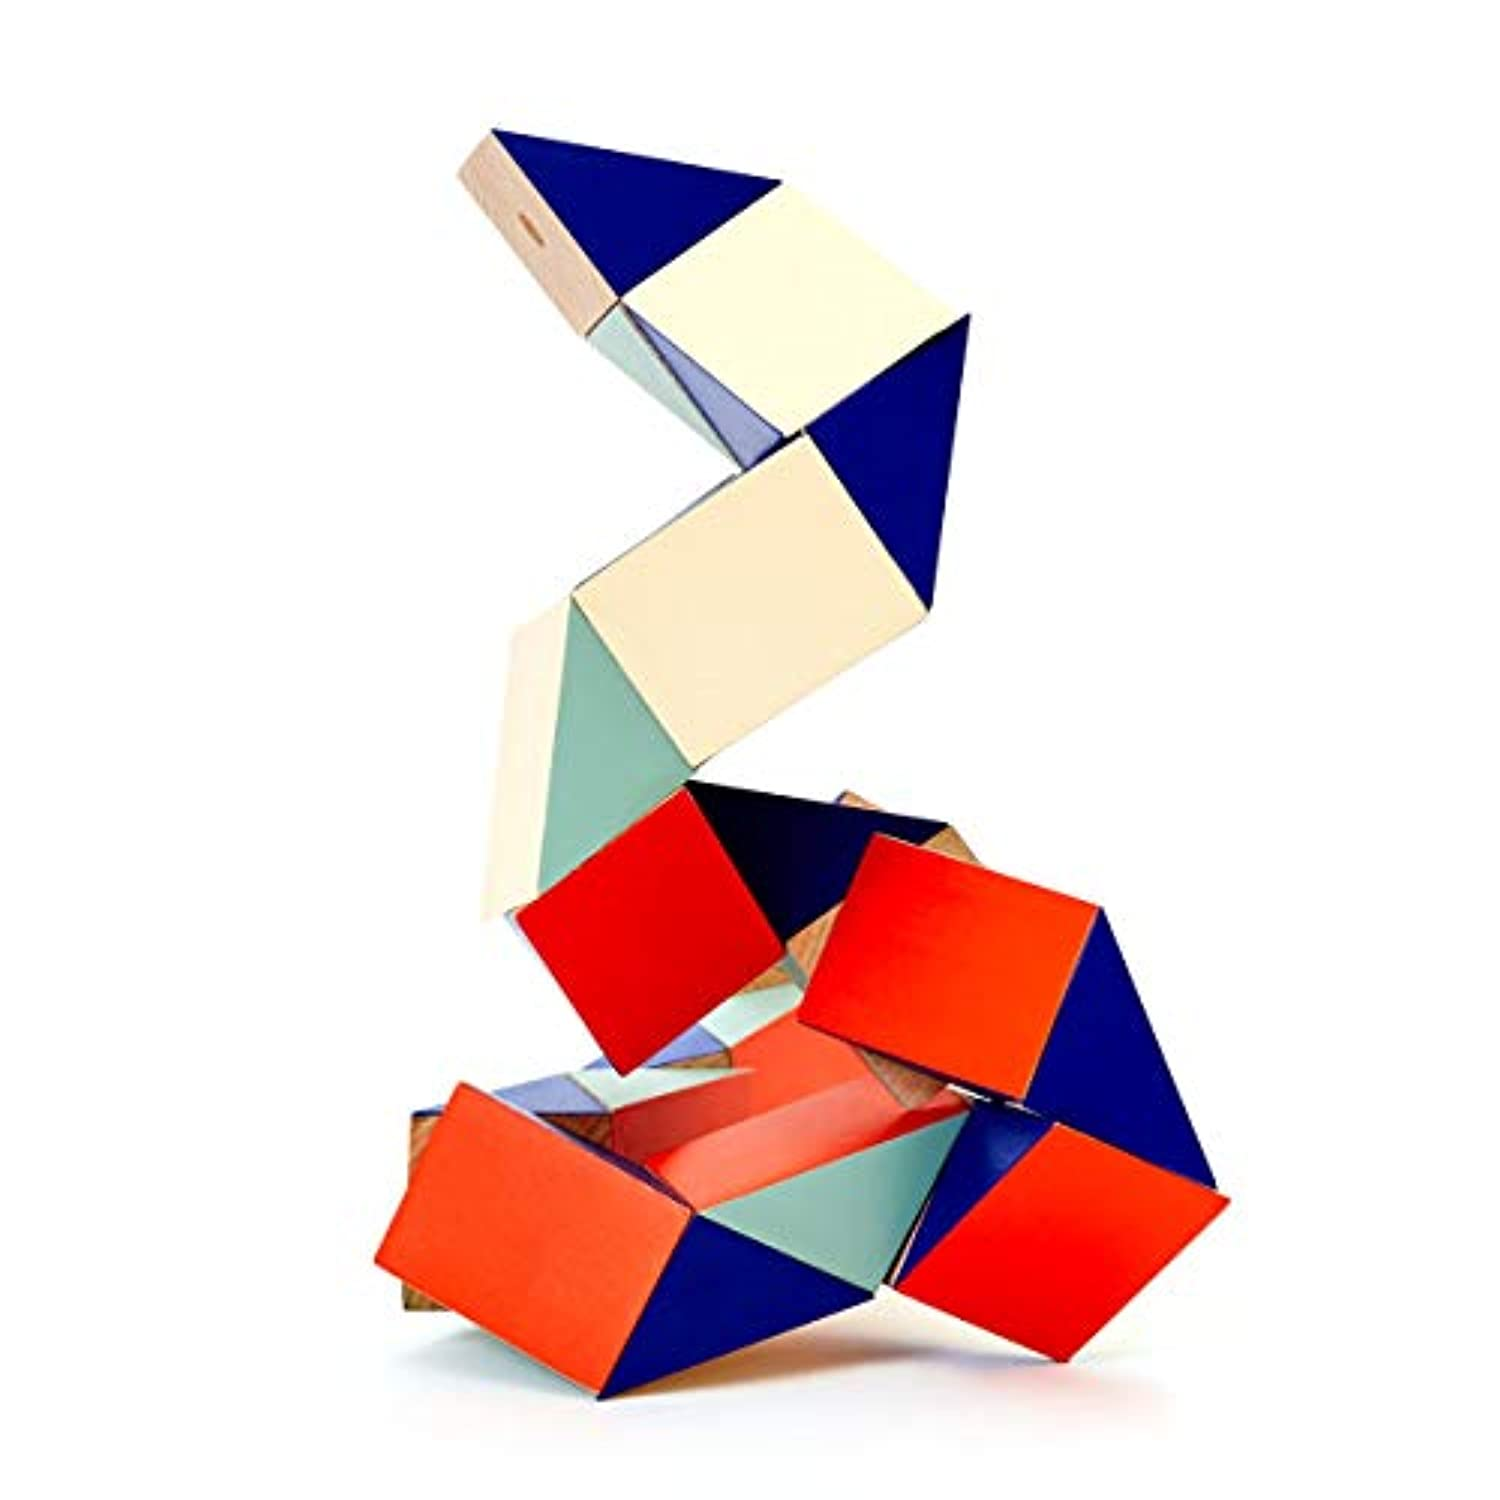 Snake Blocks 3D Puzzles : Large Red/Blue